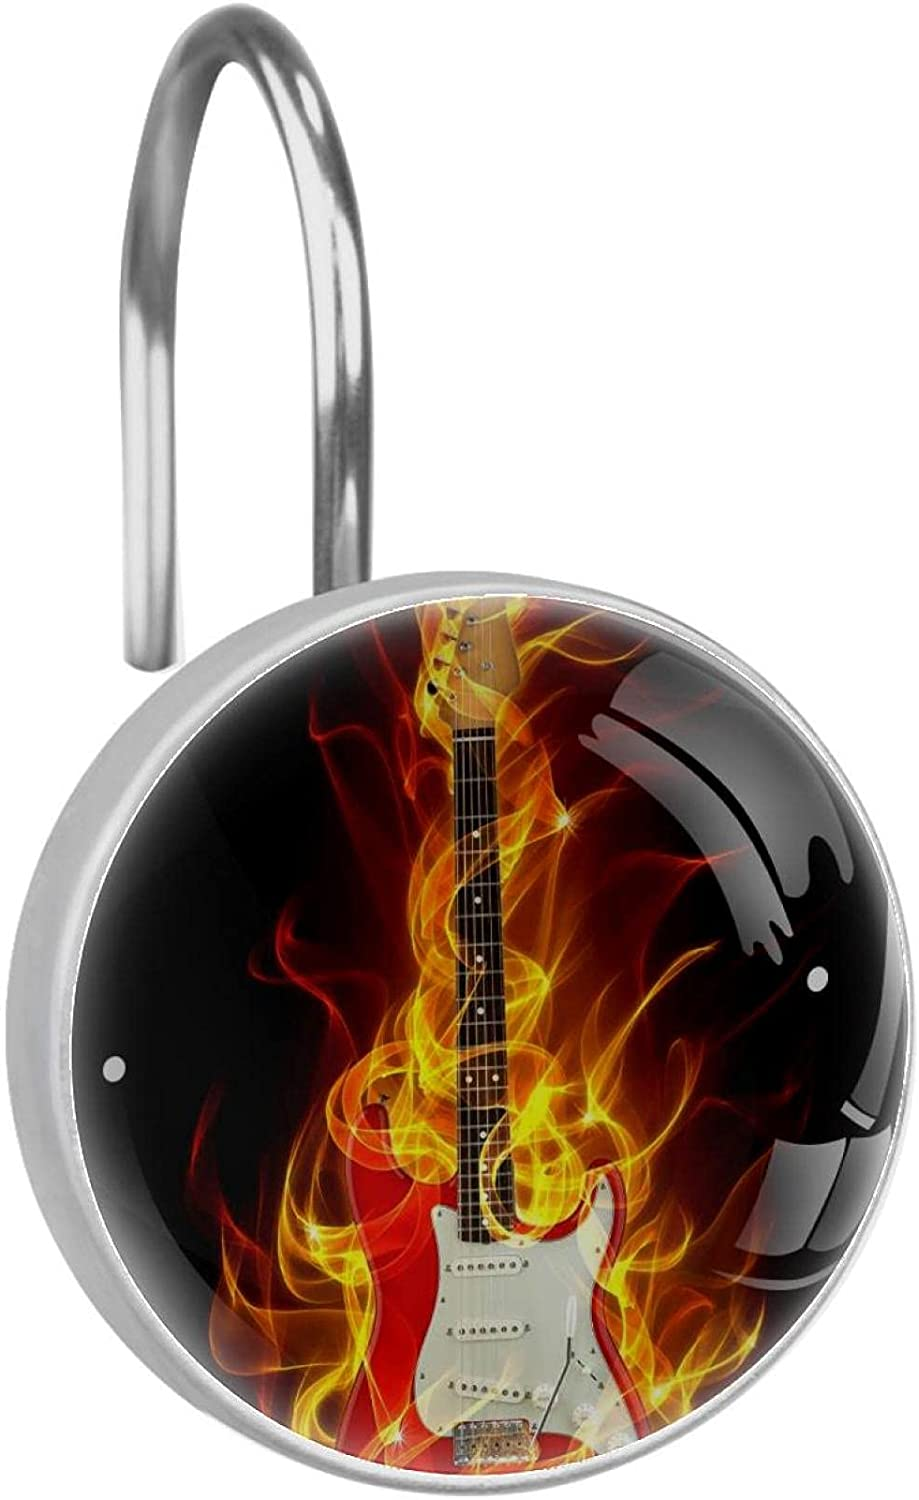 Reservation Stainless Steel Anti-rustDecorative Hanger Burning M Max 72% OFF Guitar Ring